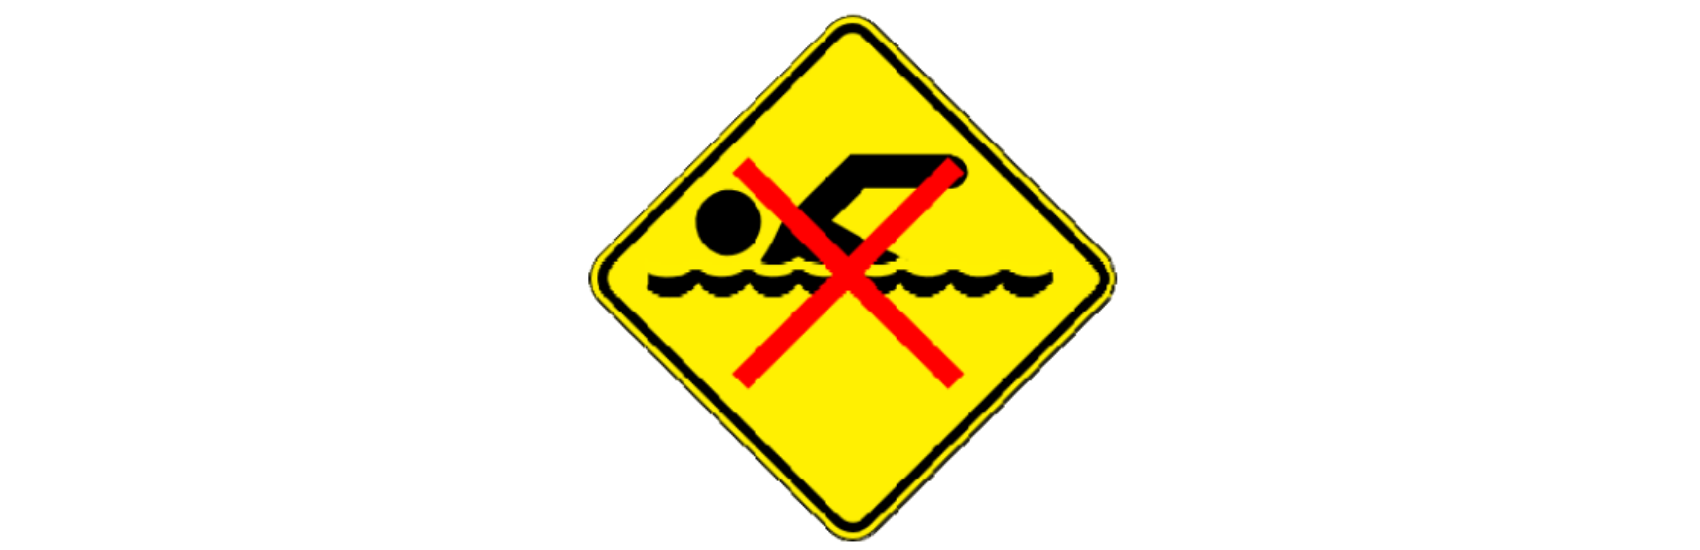 Swimming not advised